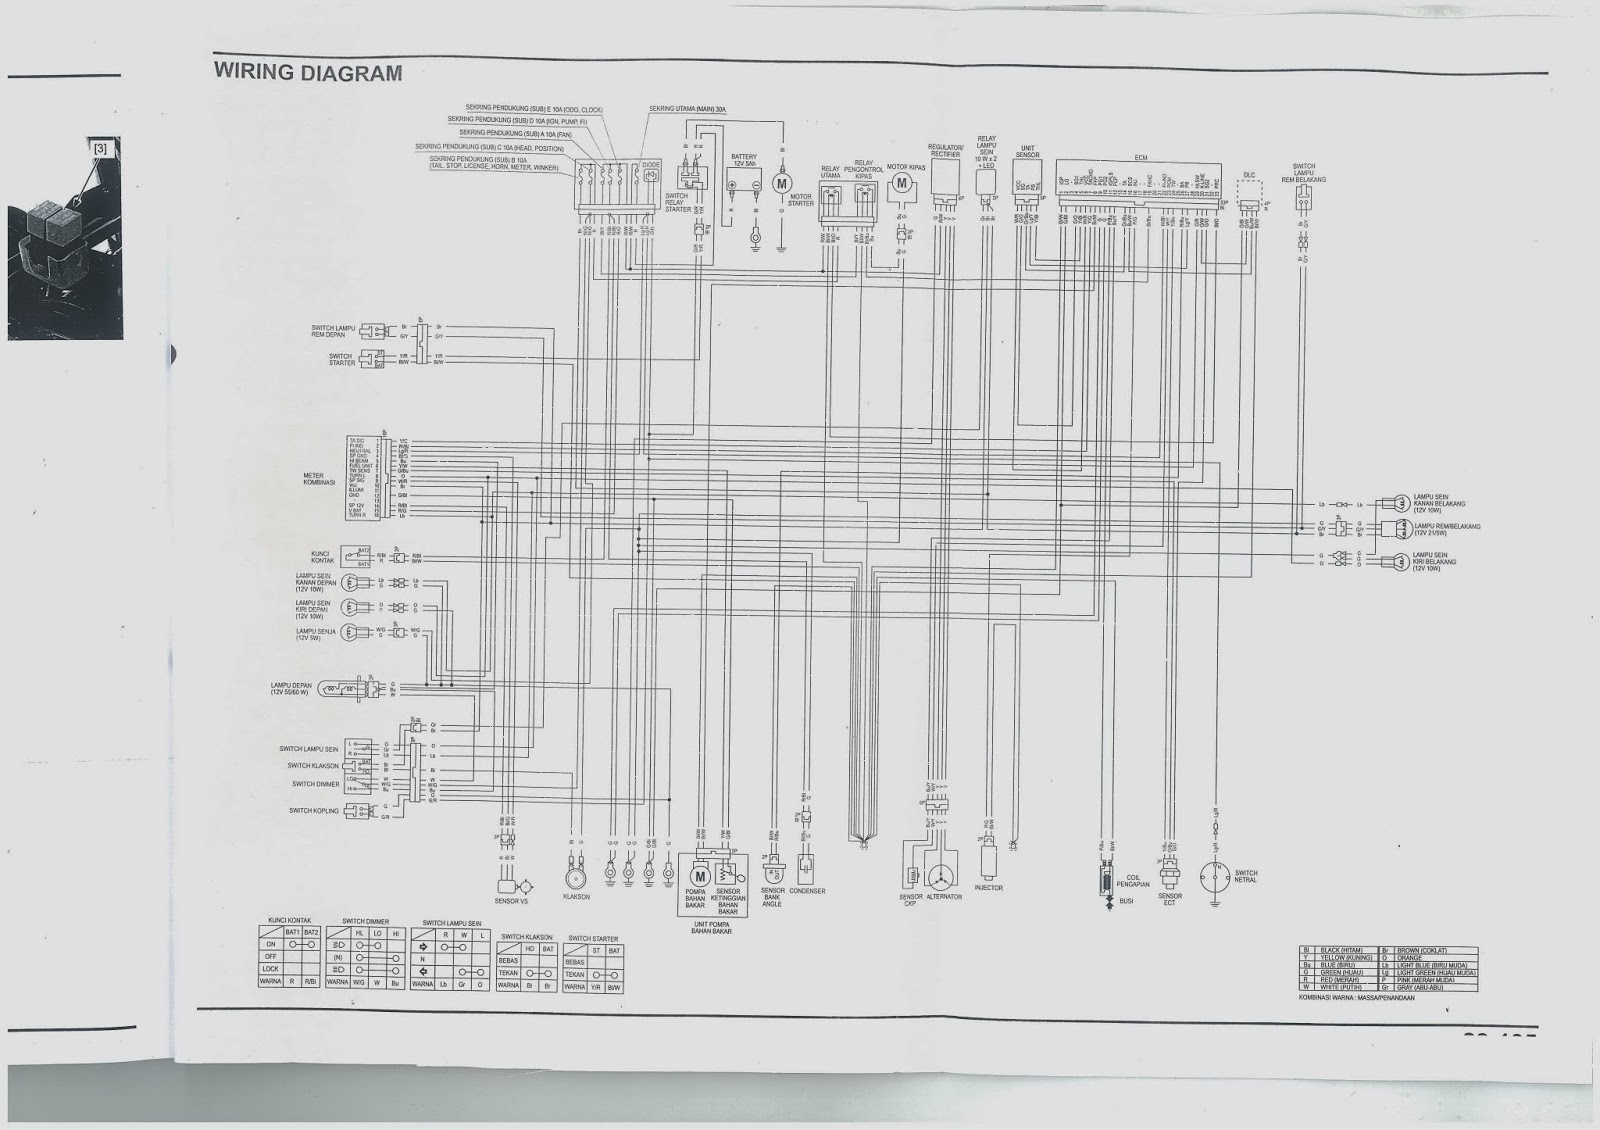 crf250 rally wiring diagram